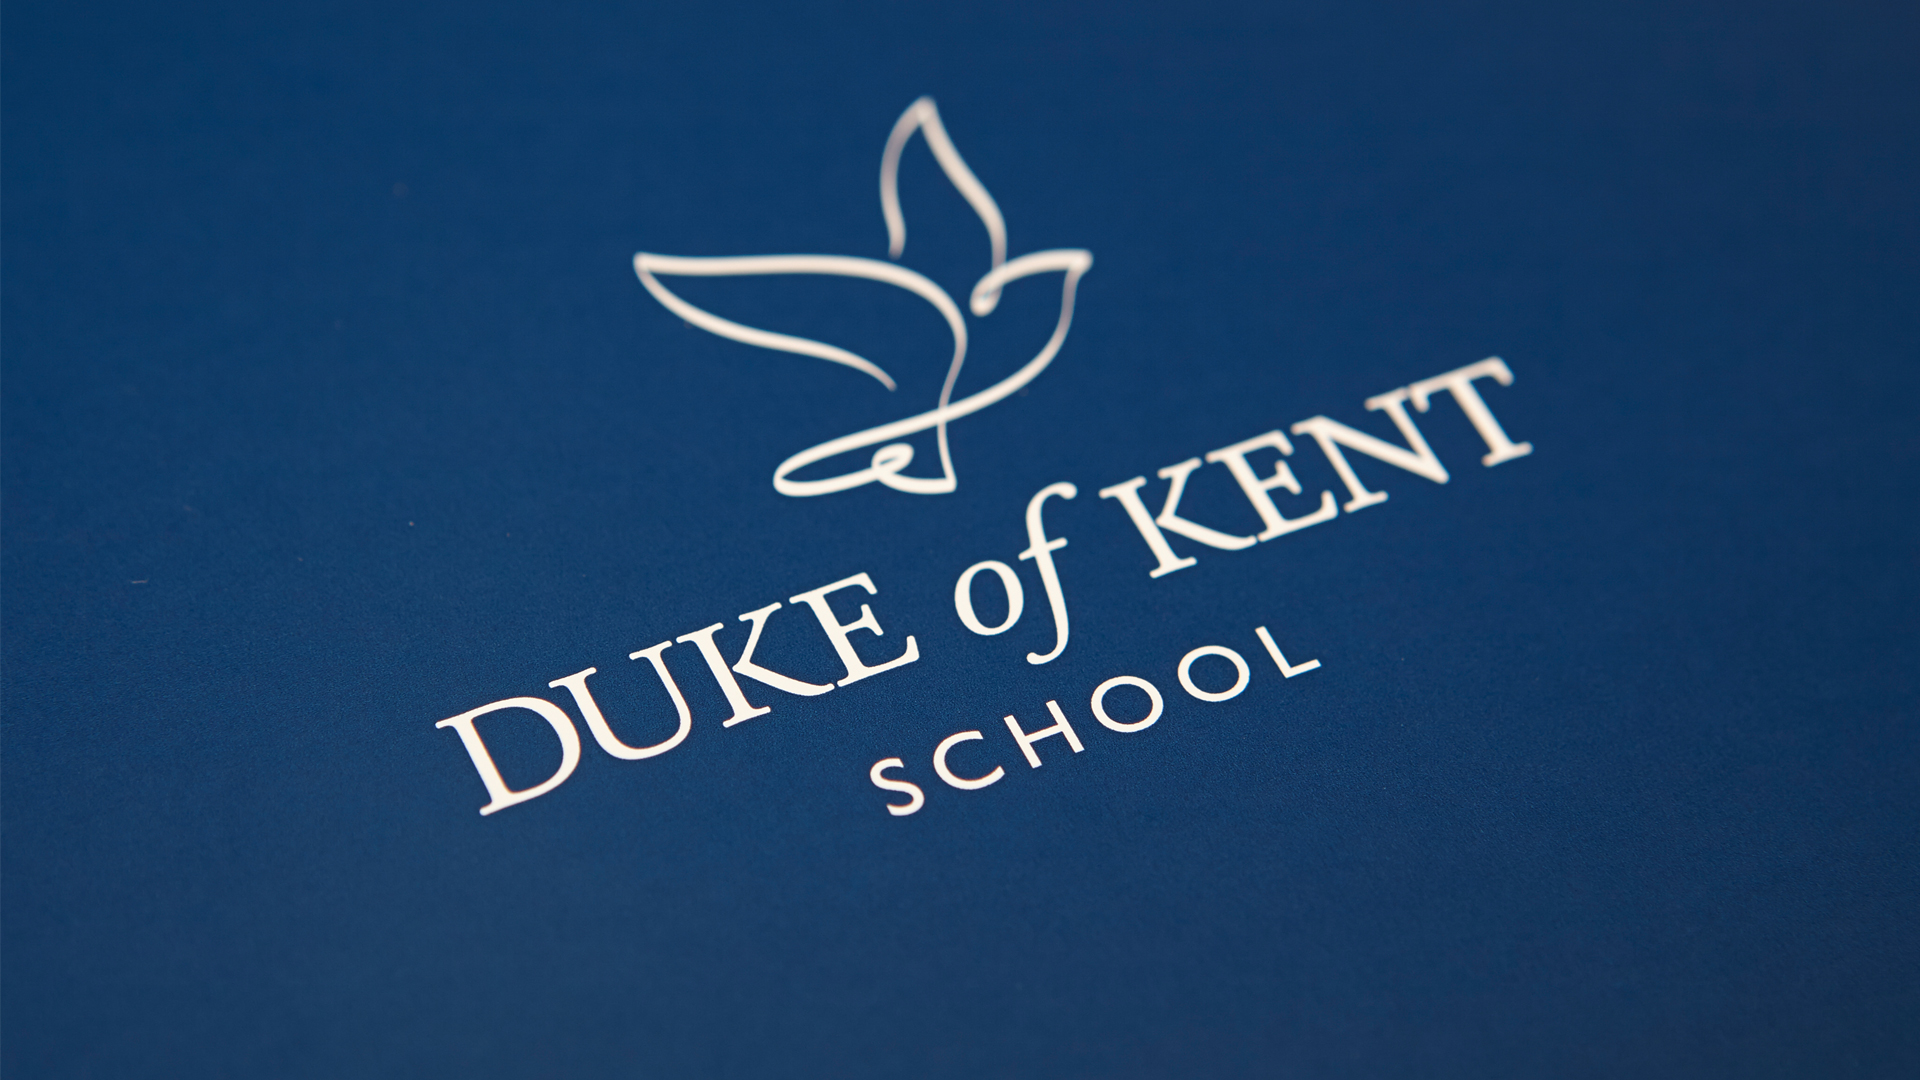 Duke Of Kent branded logo blue